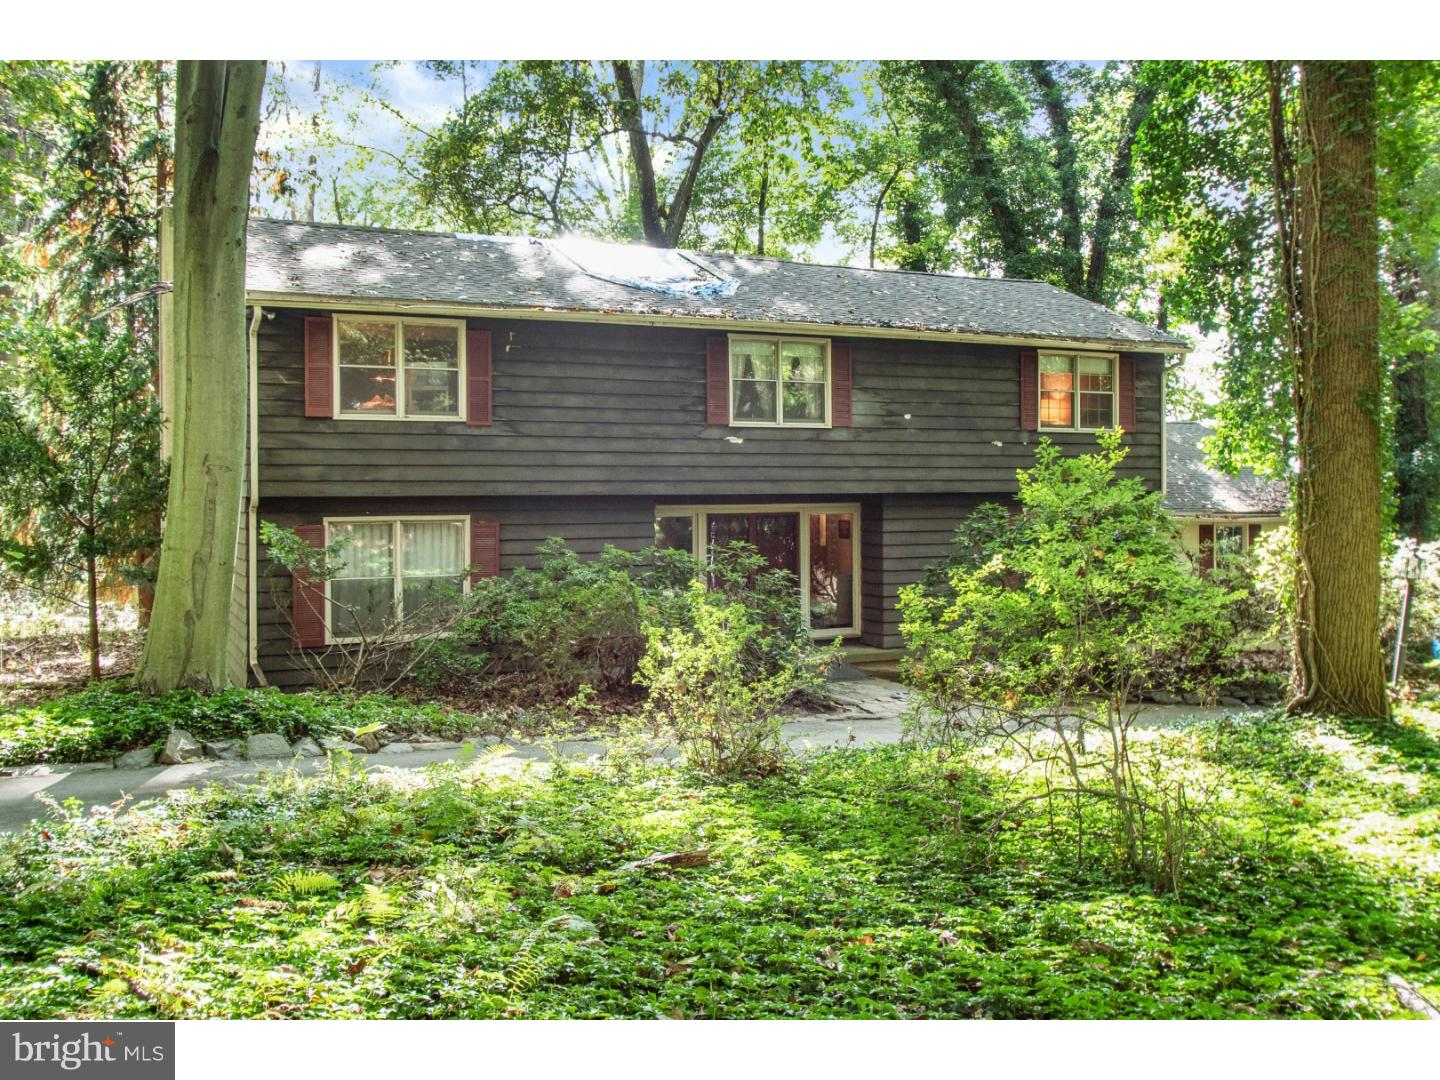 1021 N New Street West Chester , PA 19380